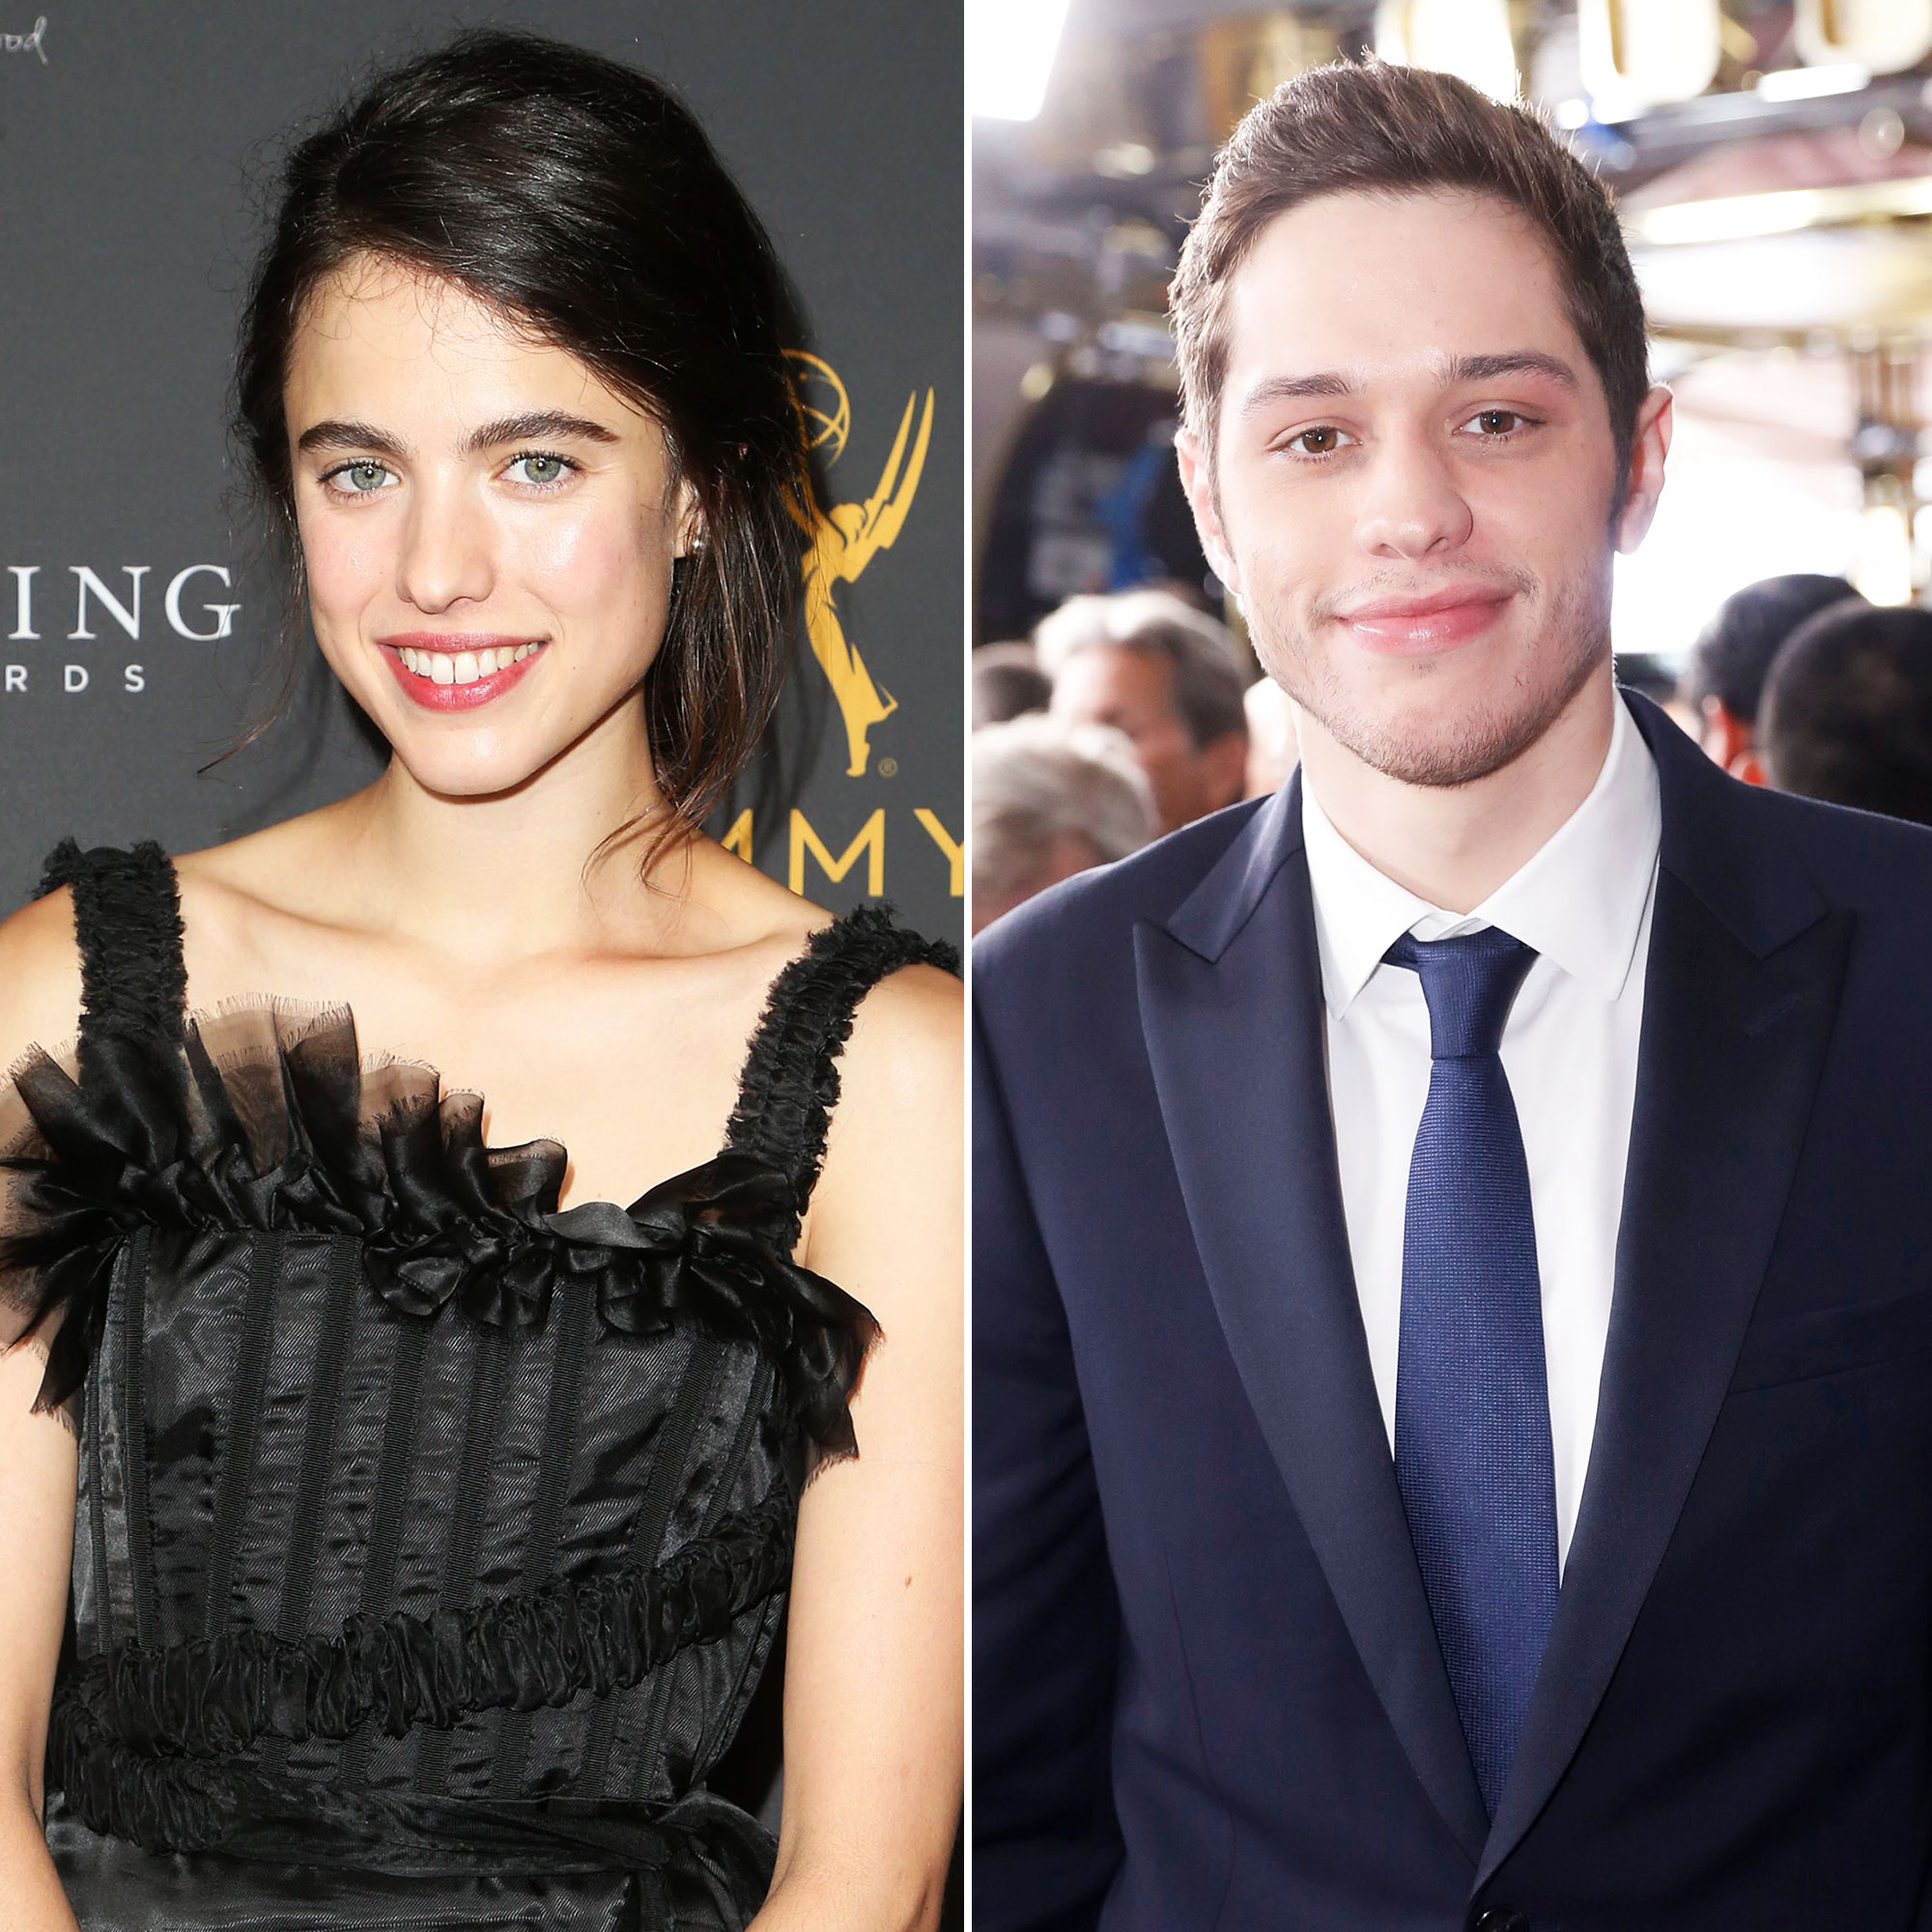 Margaret Qualley at the Casting Directors Nominee Reception Is Very Happy Amid Pete Davidson Romance